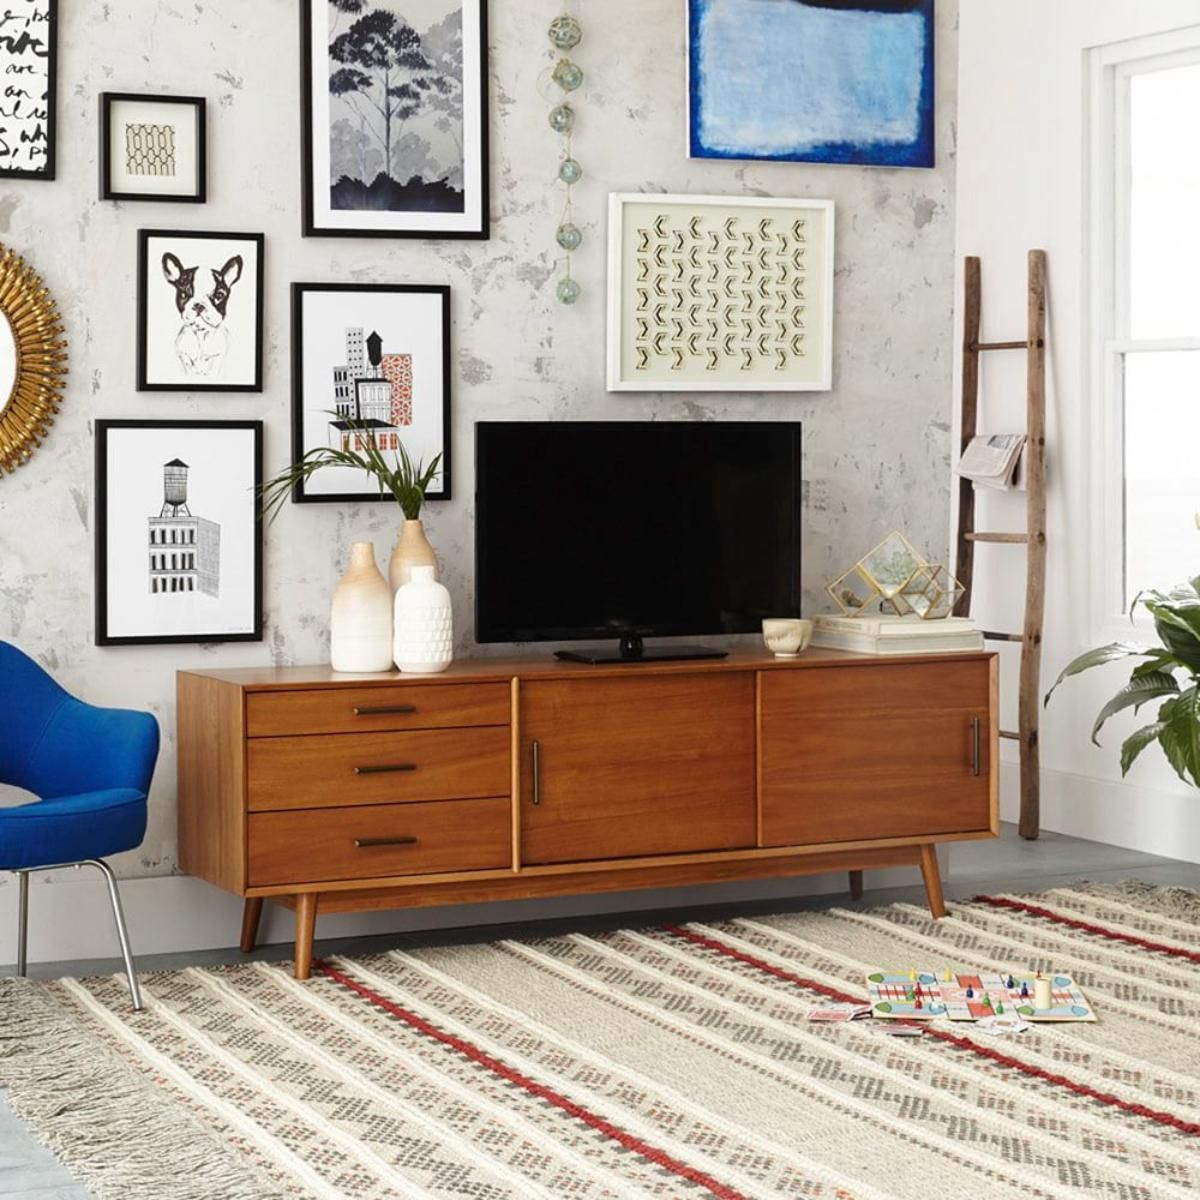 Mid Century Living Room Furniture A Gallery Wall And A Mid Century Media Console Make For The